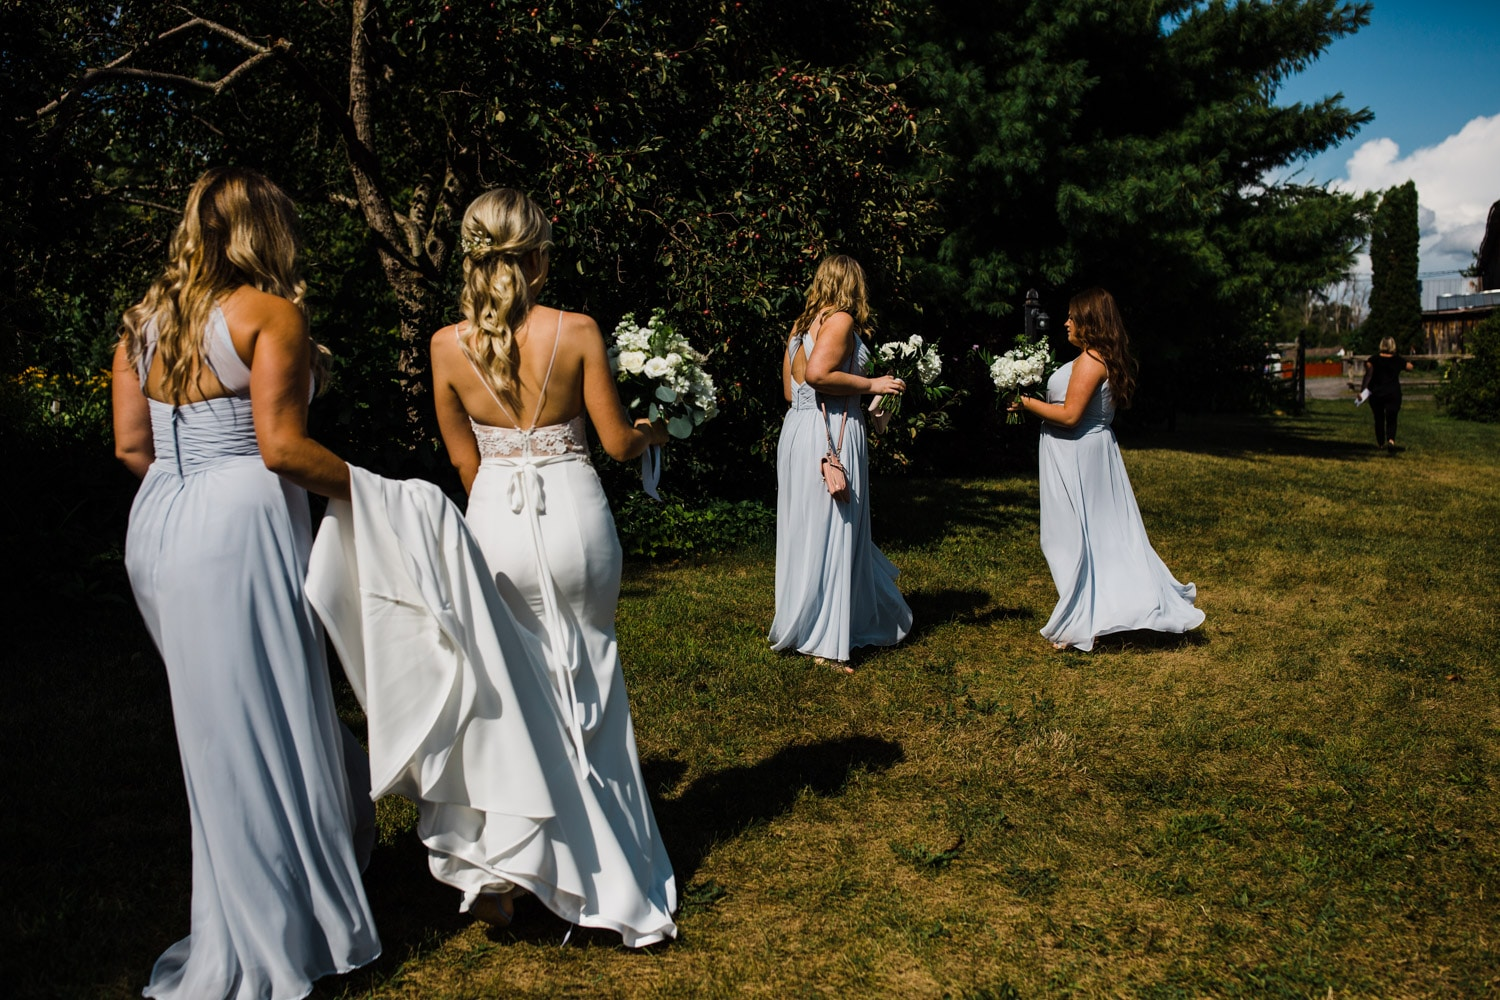 bride walks to ceremony with her bridesmaids - strathmere wedding